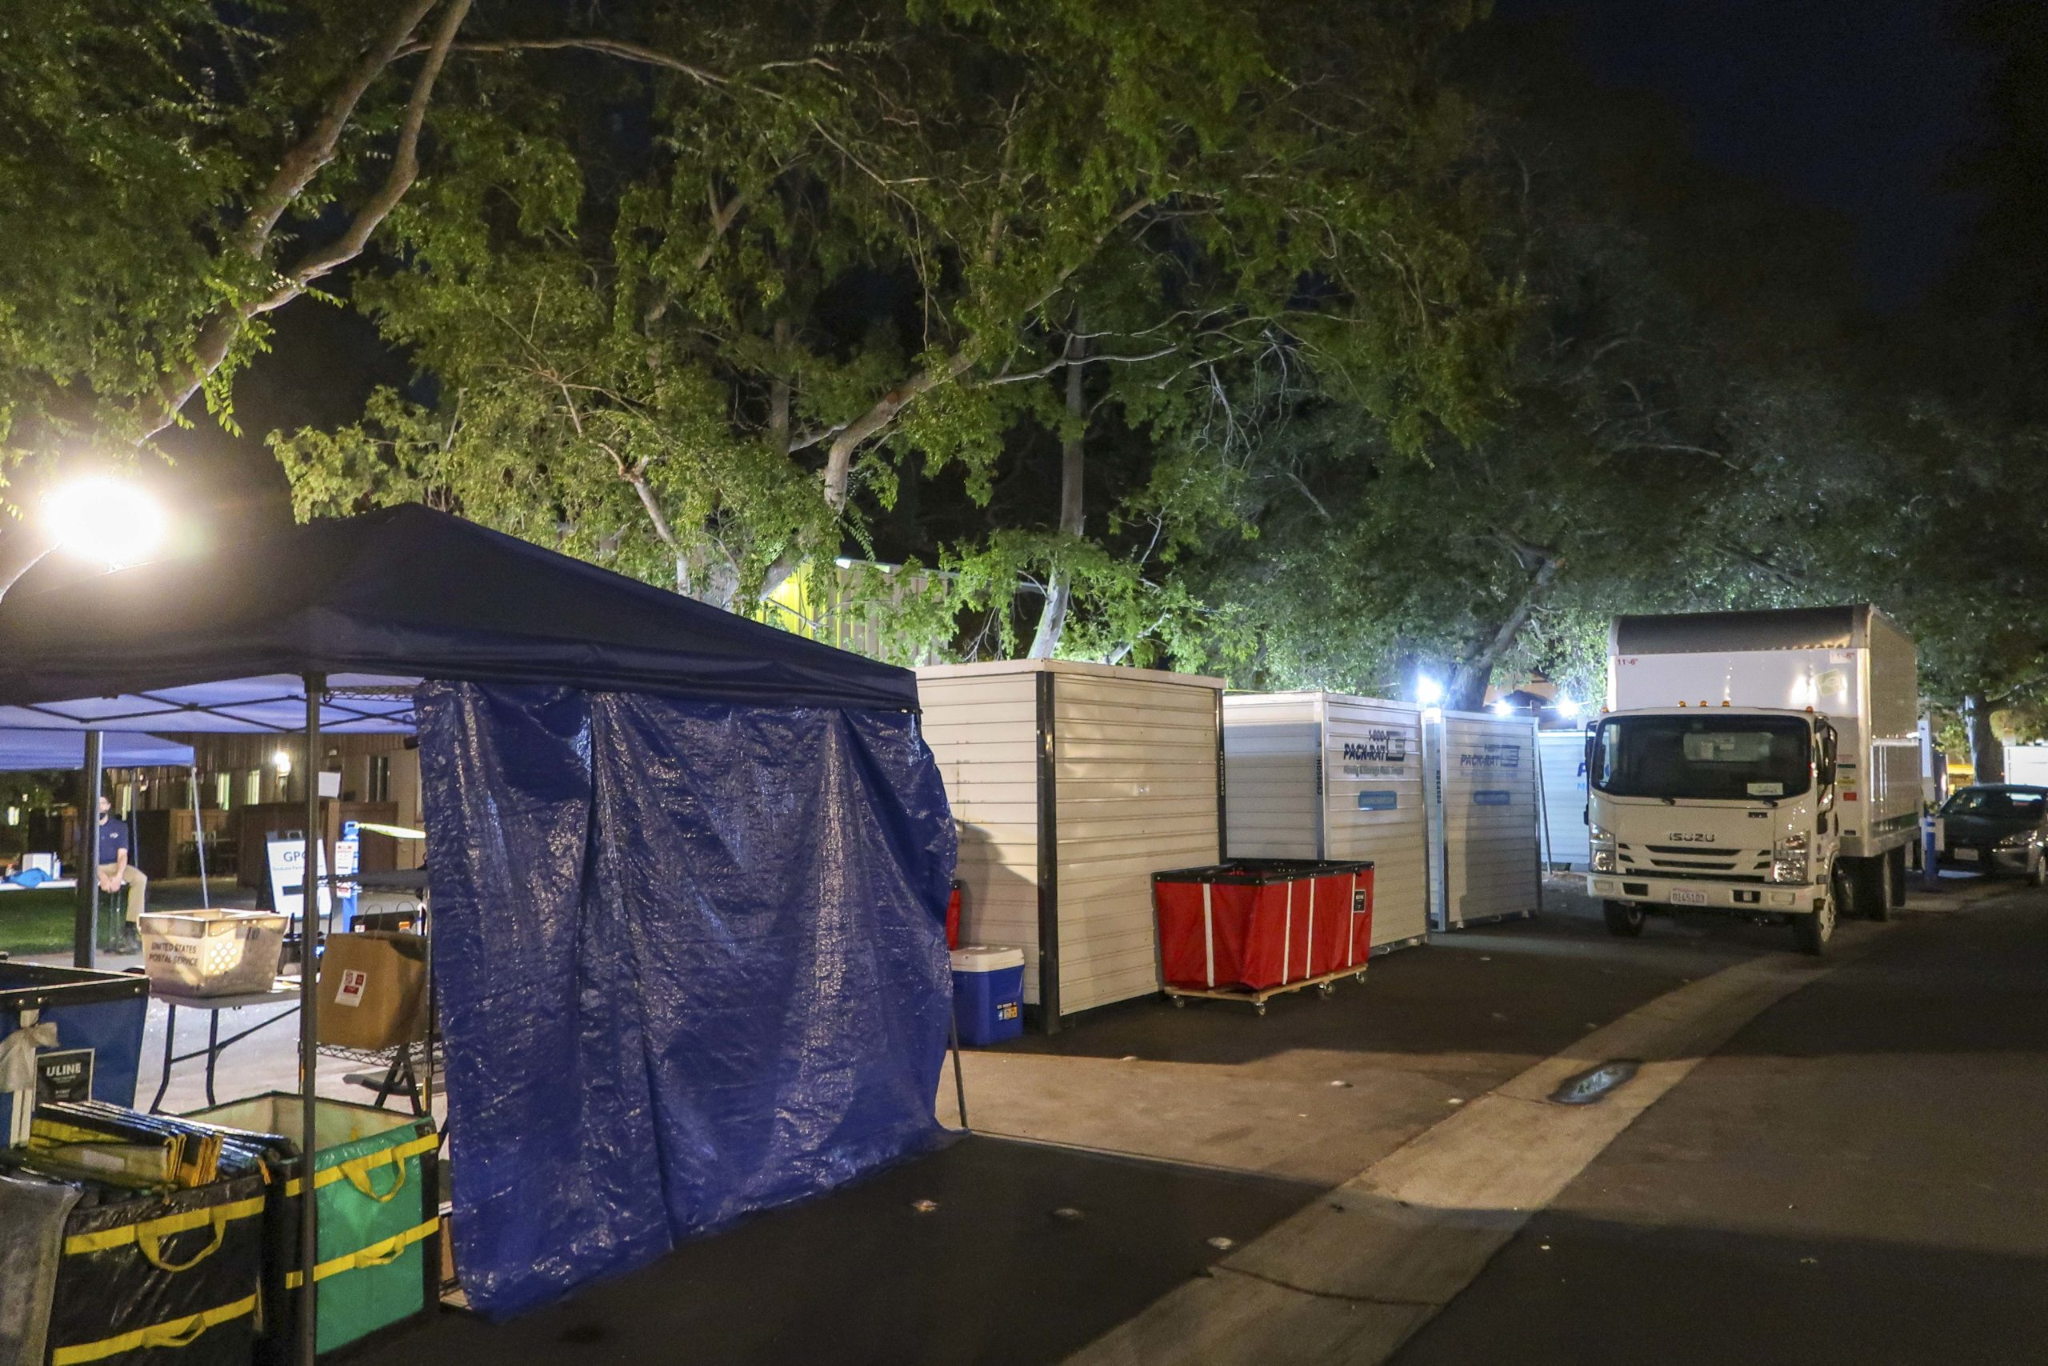 Tents and storage containers lining the streets next to residential buildings at night